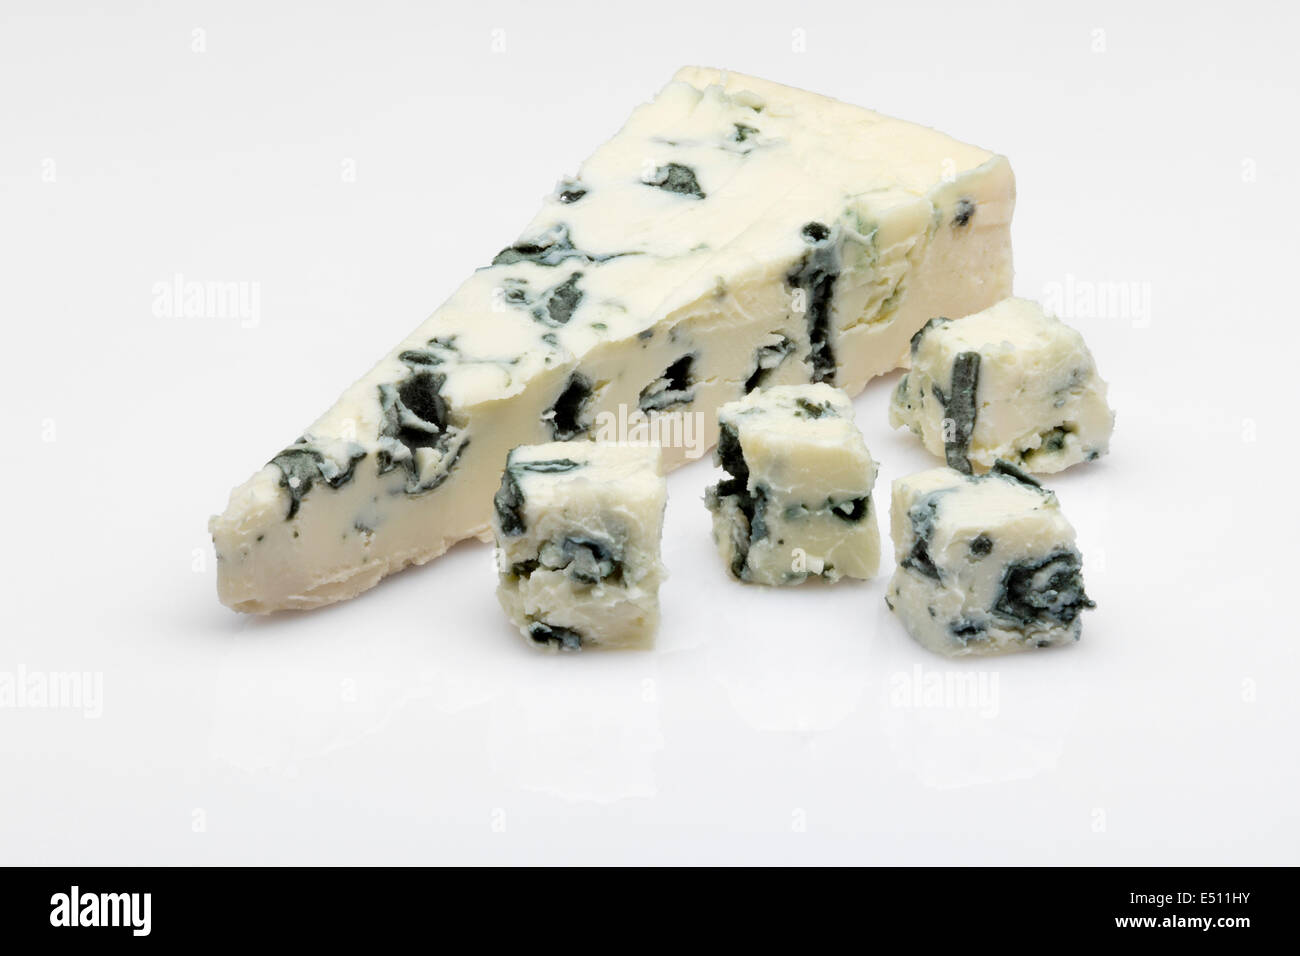 Blue cheese queso azul - Stock Image